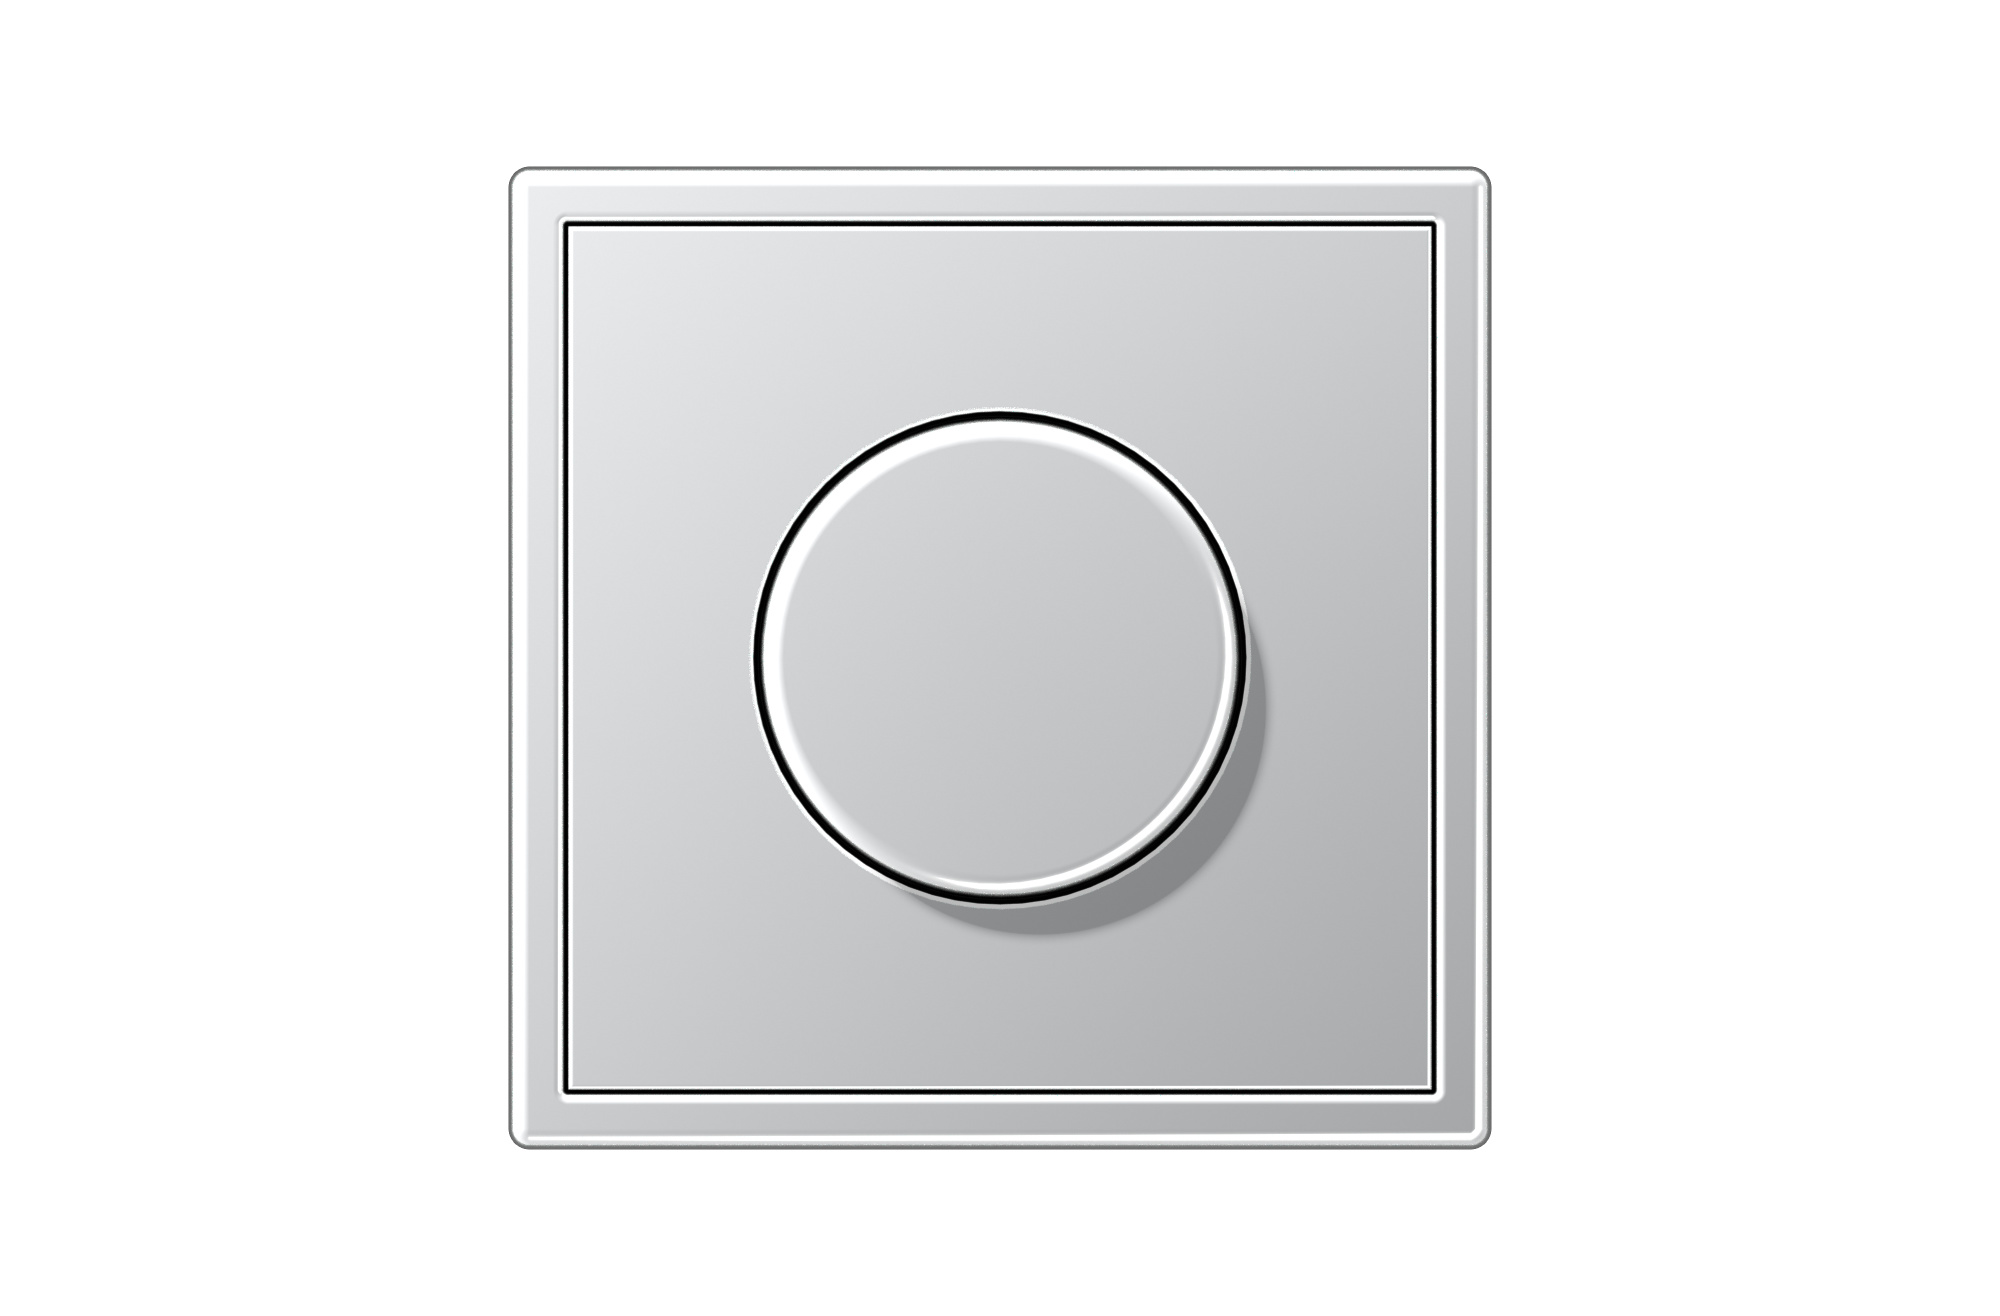 Jung Ls 990 Ls 990 Rotary Dimmer In Aluminium By Jung Archello